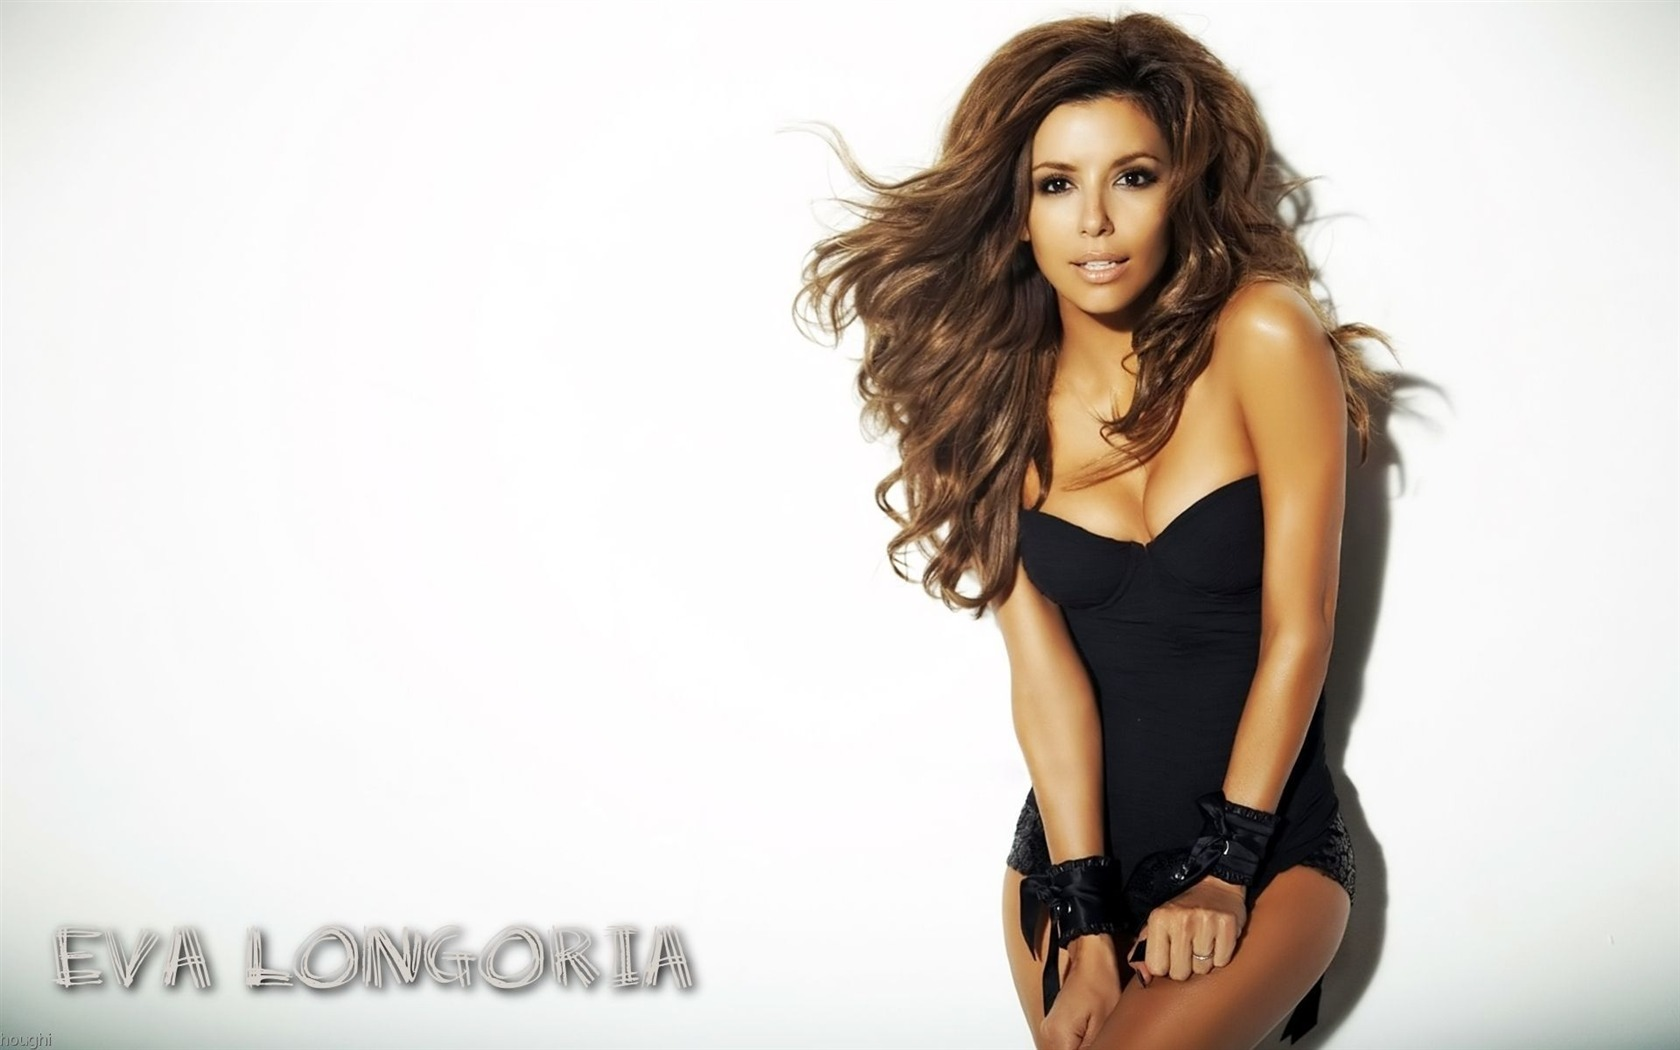 Eva Longoria #008 - 1680x1050 Wallpapers Pictures Photos Images